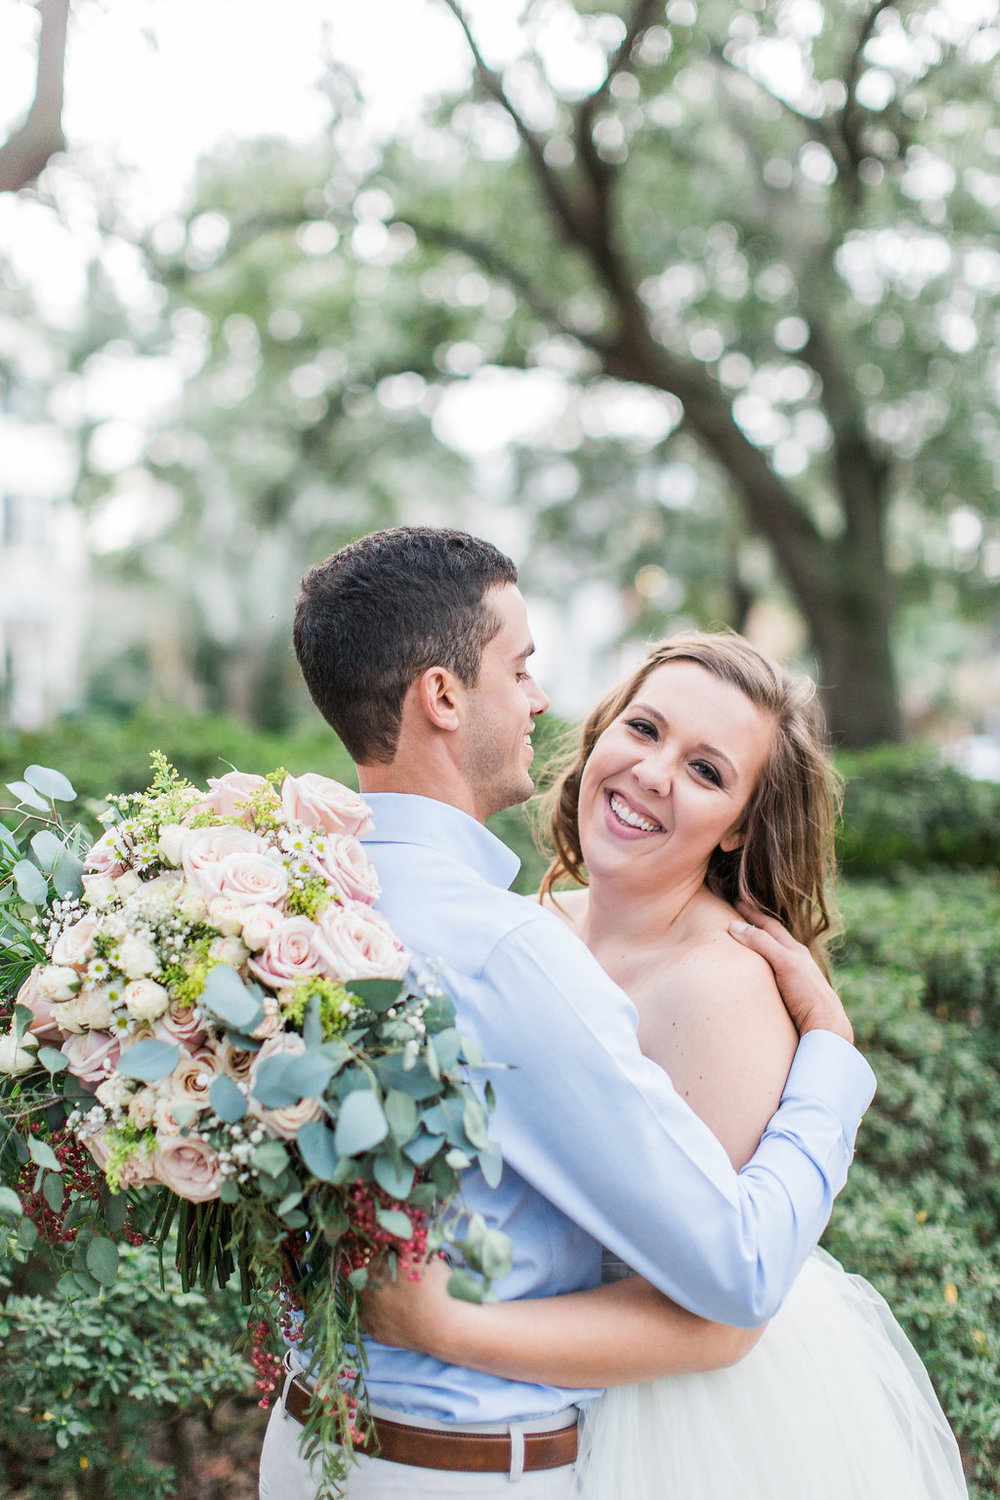 Savannah_Wedding_Photography_AptBPhotography_Elopements470.JPG